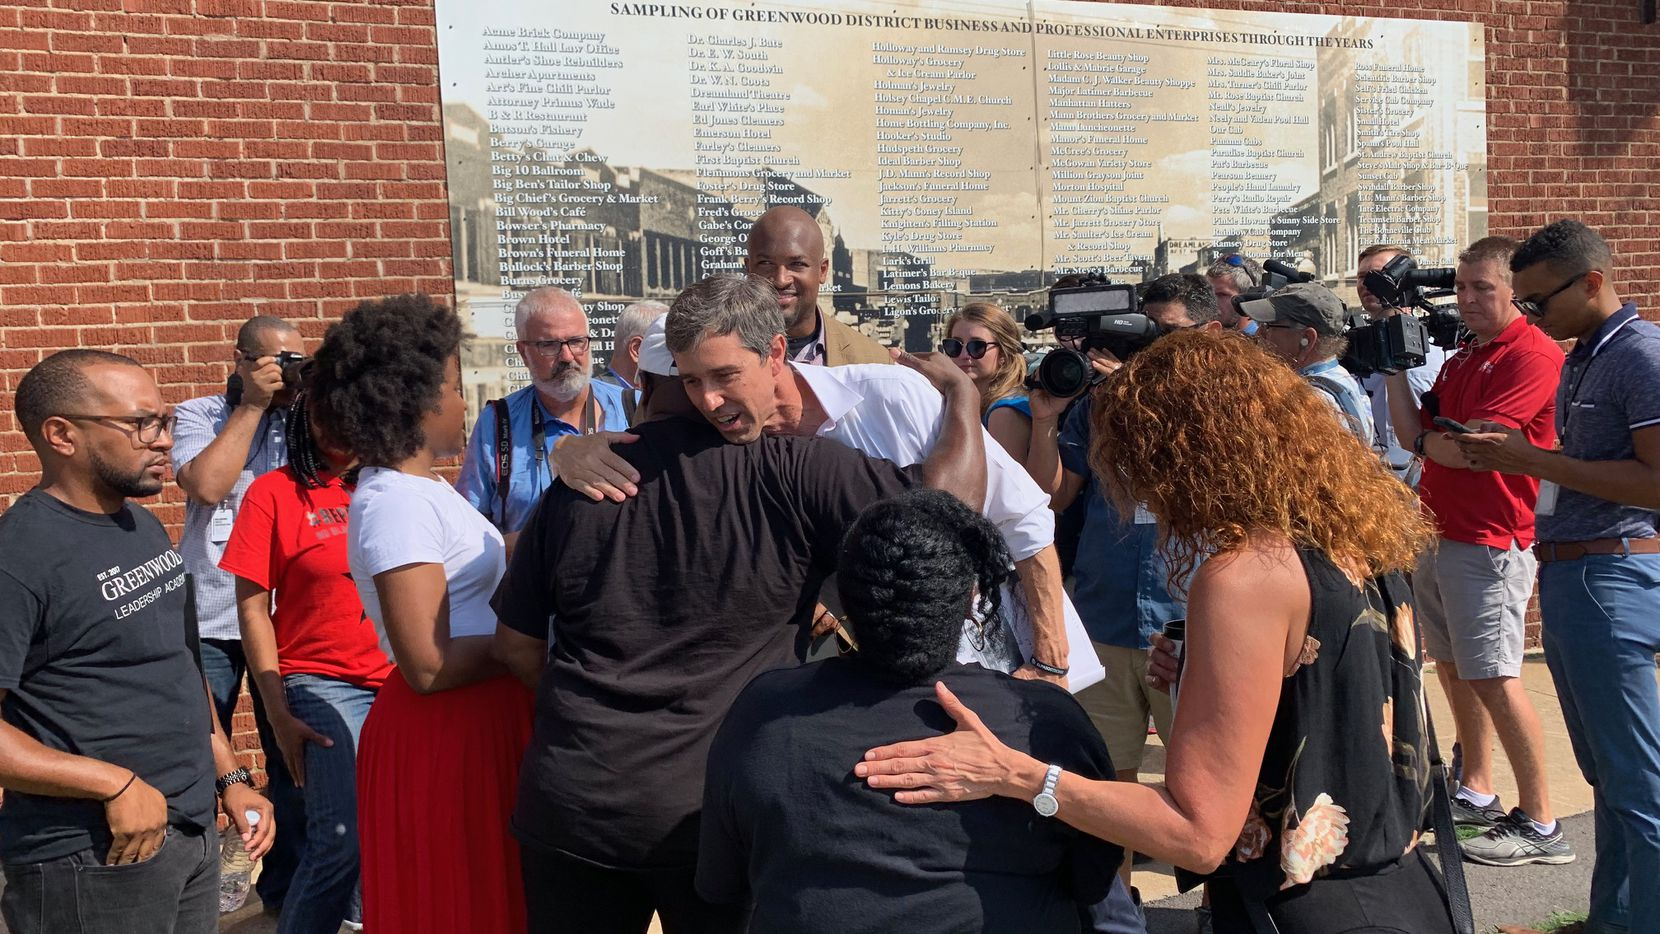 Democratic presidential hopeful Beto O'Rourke hugs a community activists during his tour of the Greenwood neighborhood in Tulsa. The once affluent black community was overrun by a white mob in 1921.